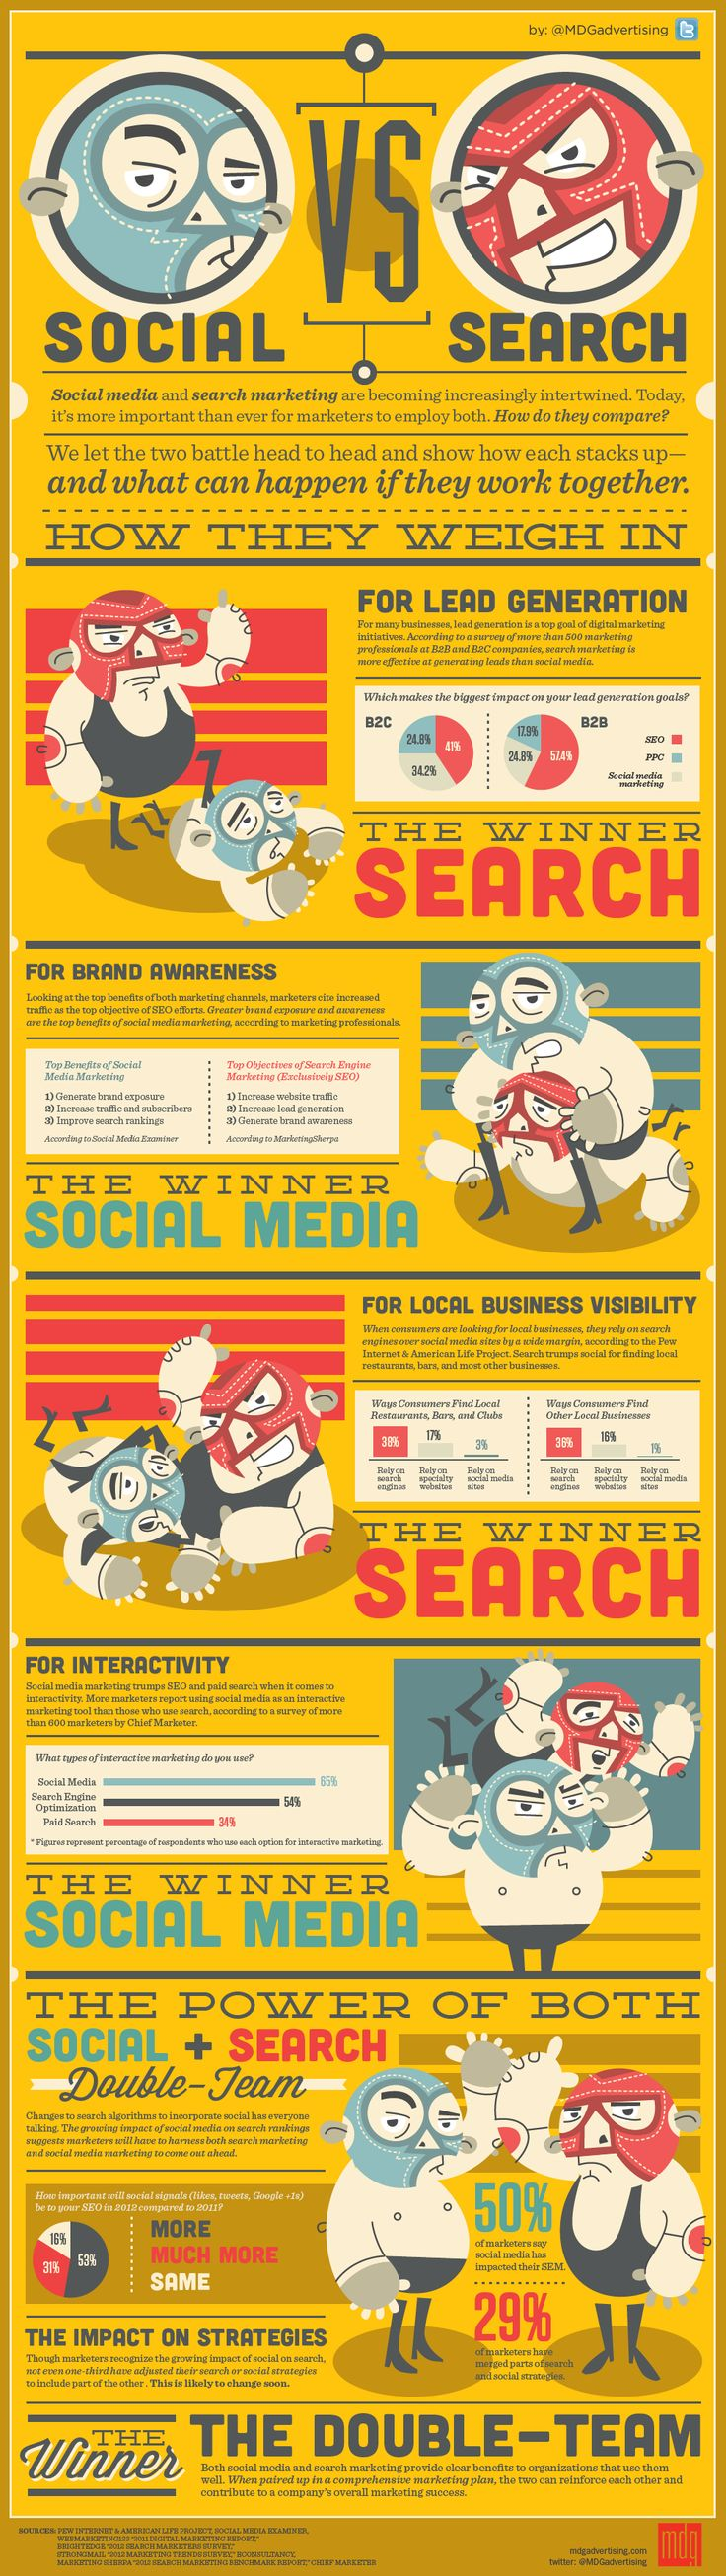 Social Media vs. Search Infographic. Which performs better for lead generation, brand awareness, locals business visibility, and interactivity.